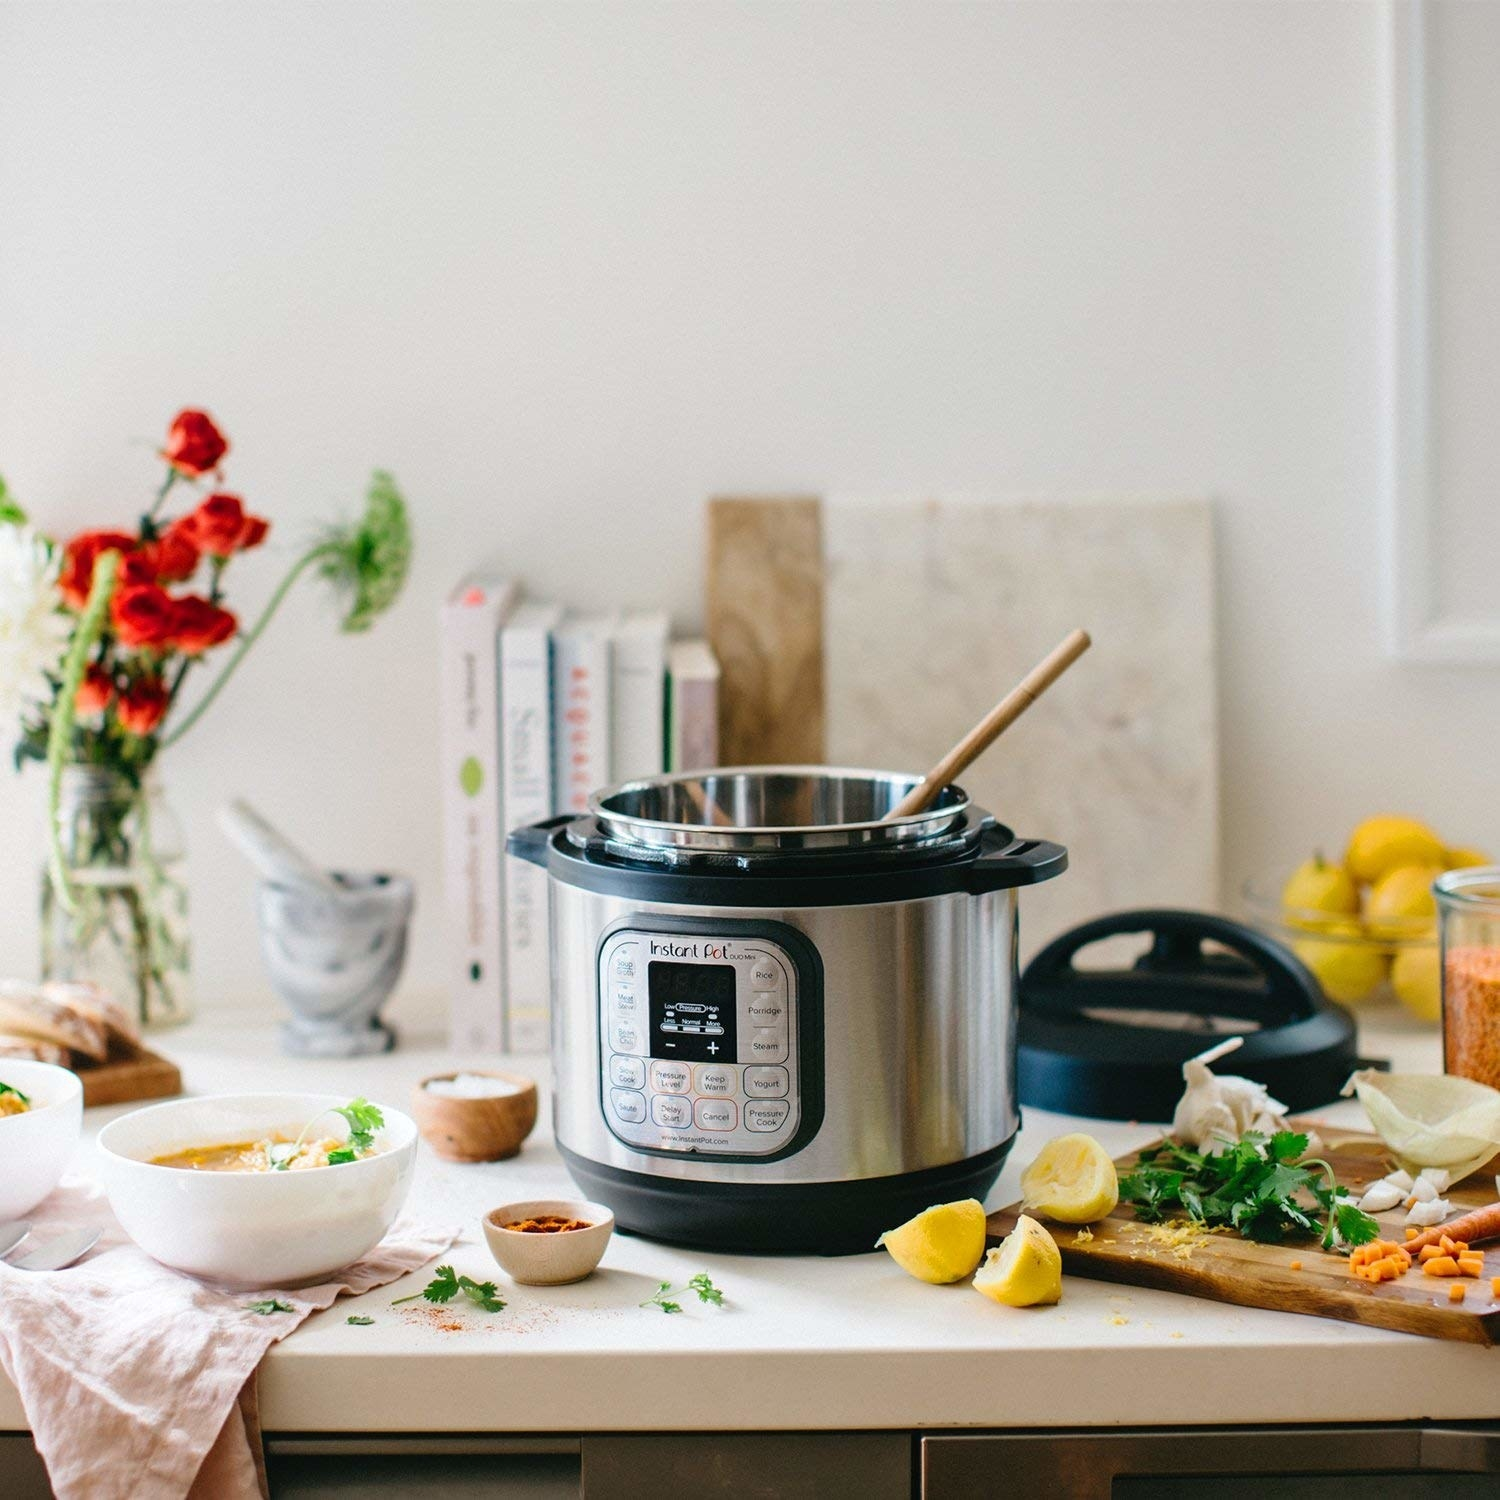 open Instant Pot with wooden spoon sticking out of it on a kitchen counter with a lot of ingredients